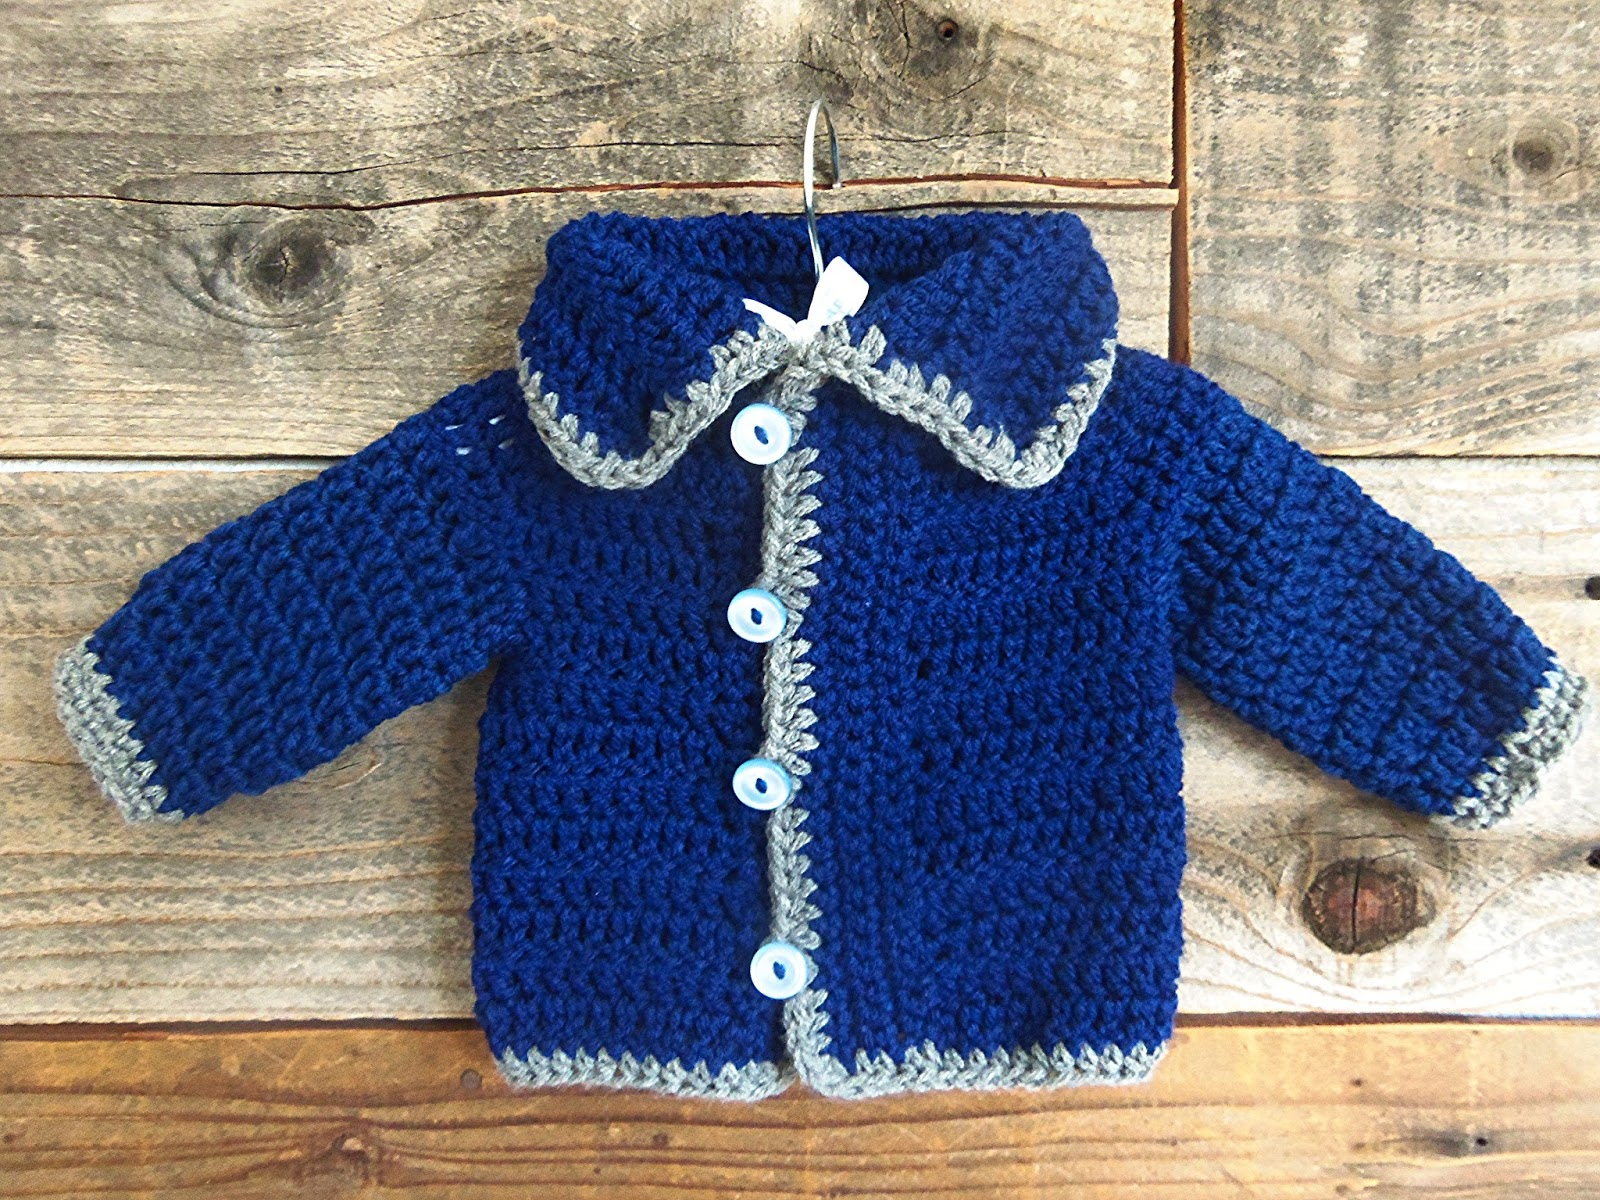 Crochet Baby Sweater : 3squeezes: Easy Crochet Baby Sweater